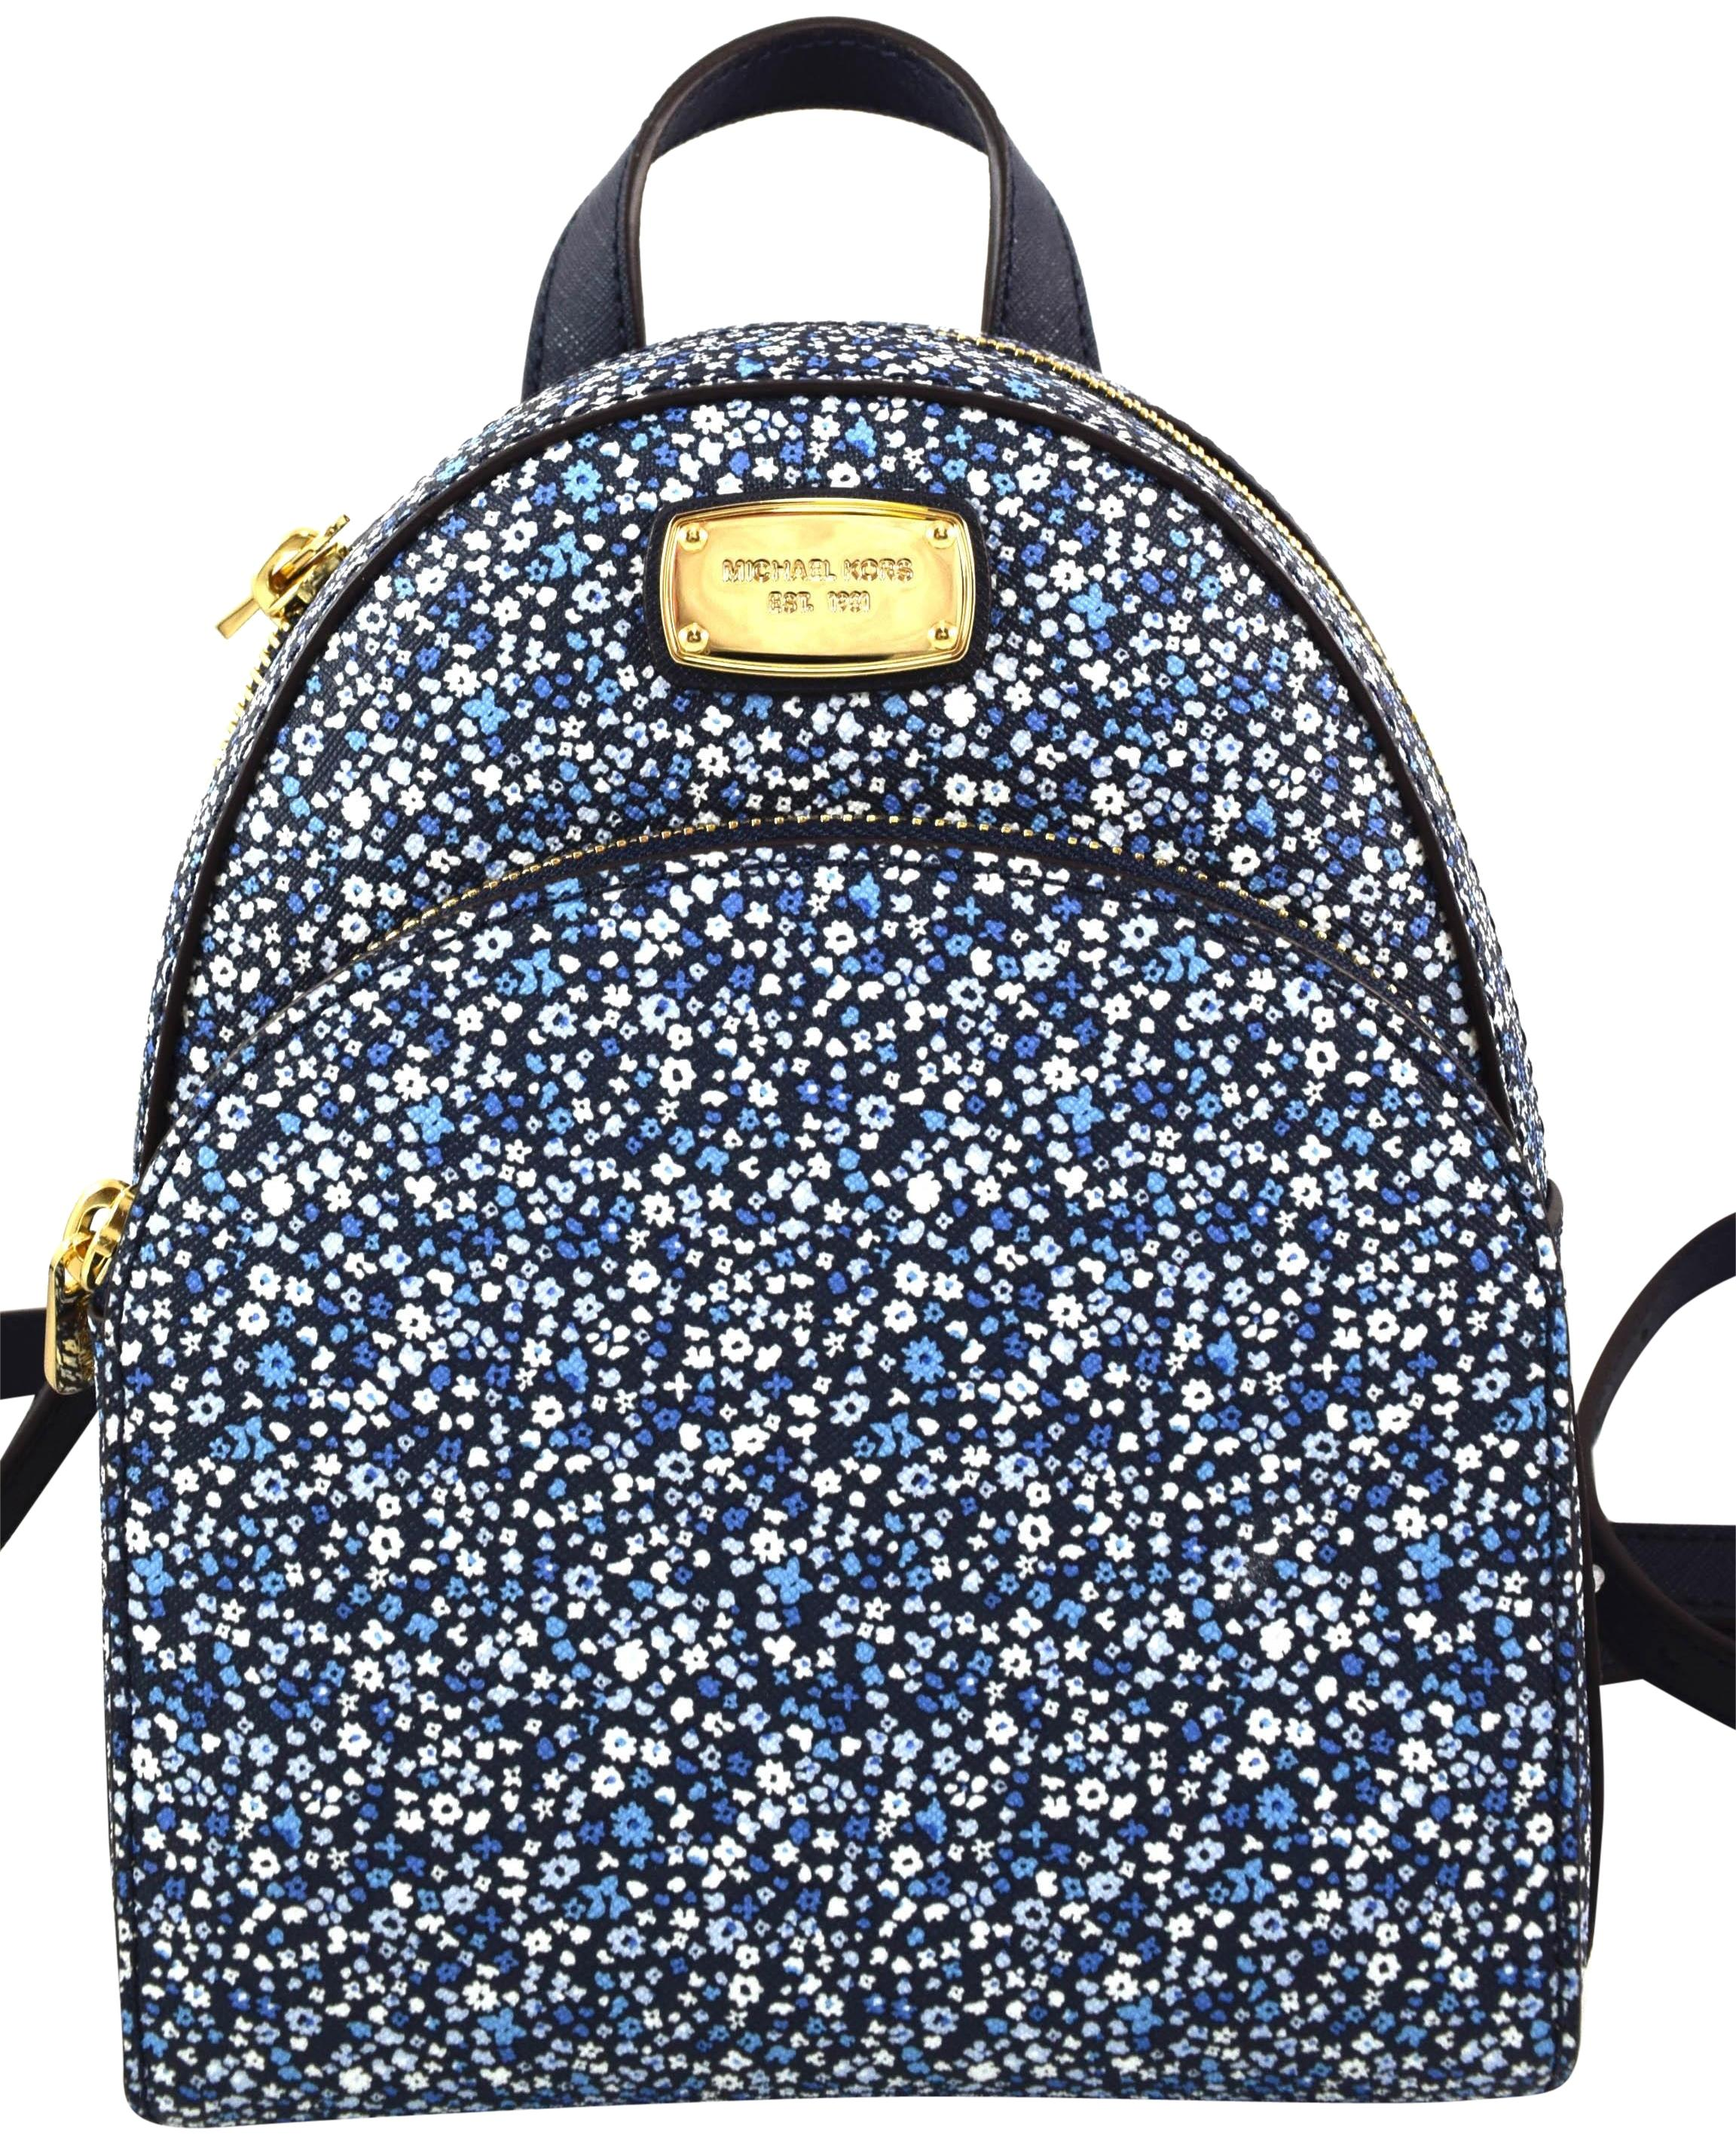 6a70bd6ae669 ... amazon michael kors abbey xs navy leather backpack tradesy ecd8f 4561b